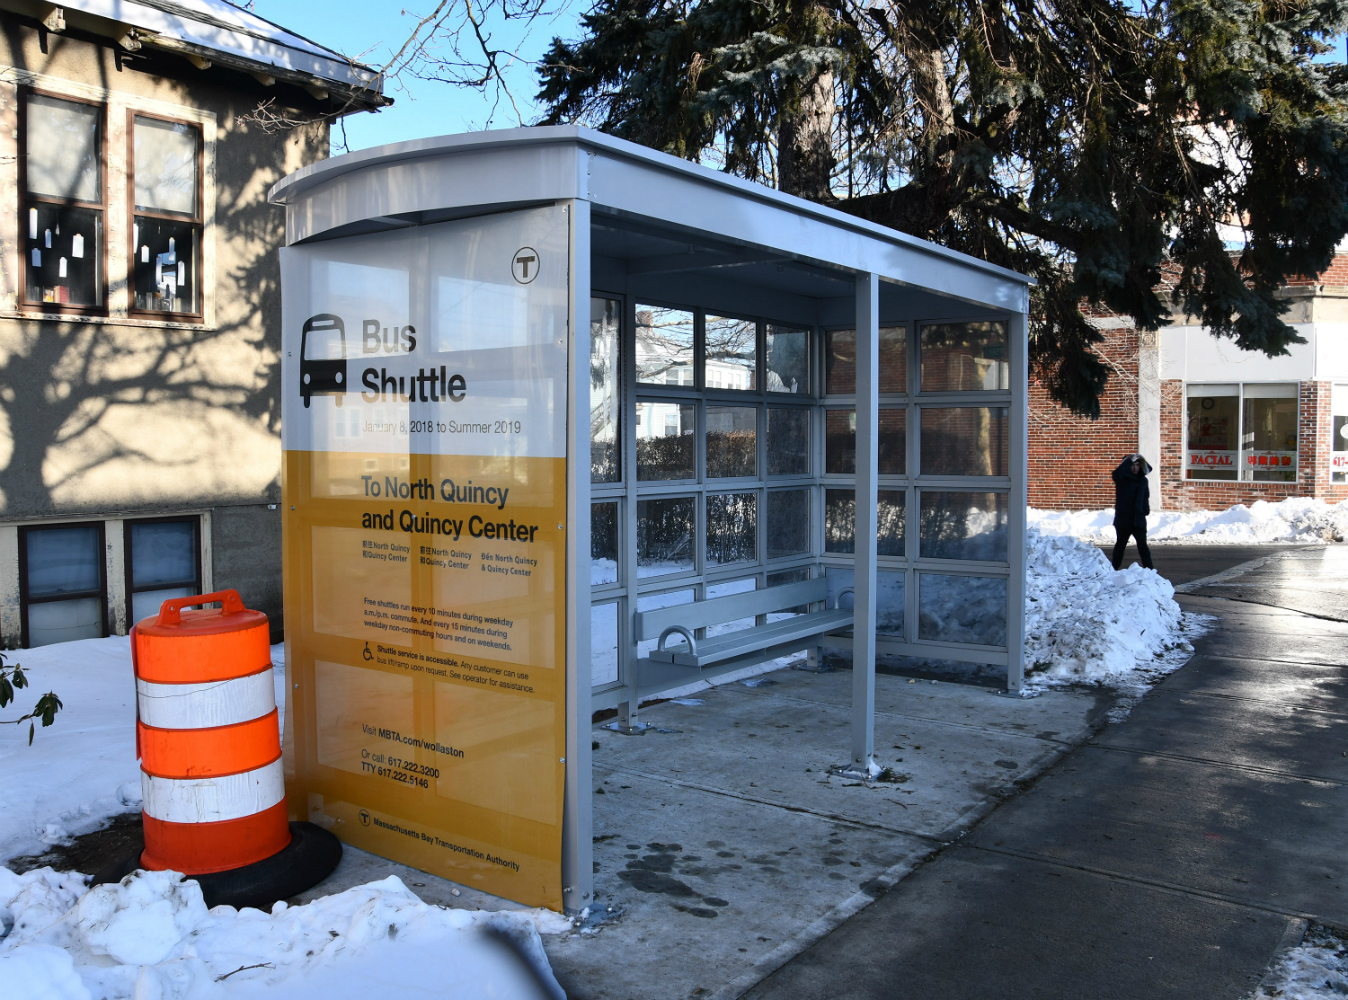 New bus shelter with snow in the background.